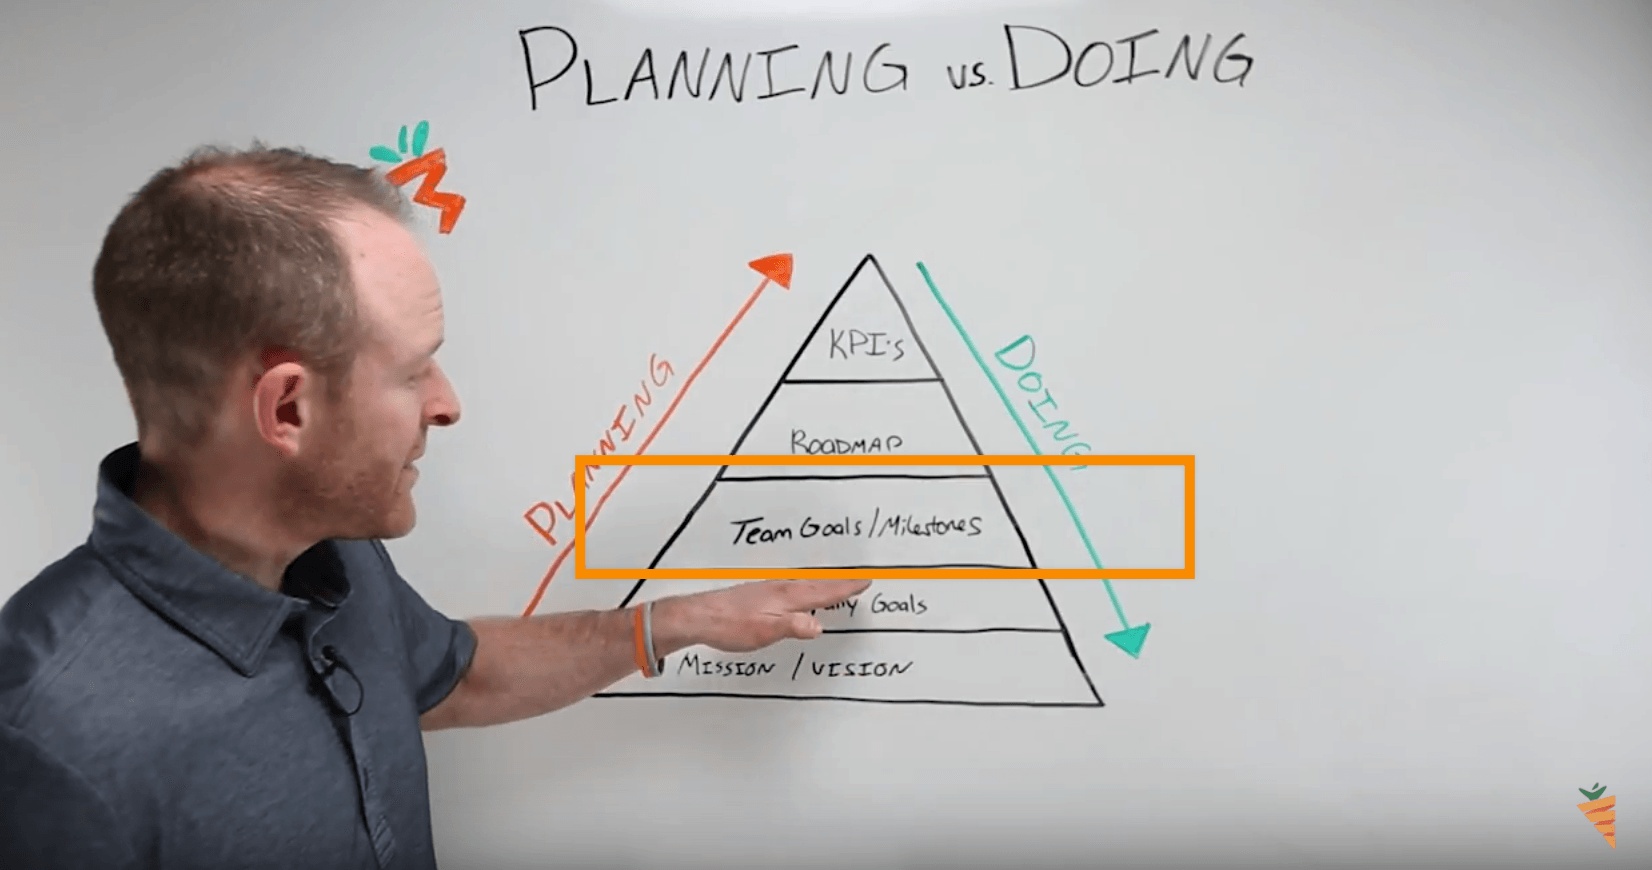 planning vs doing team goal setting